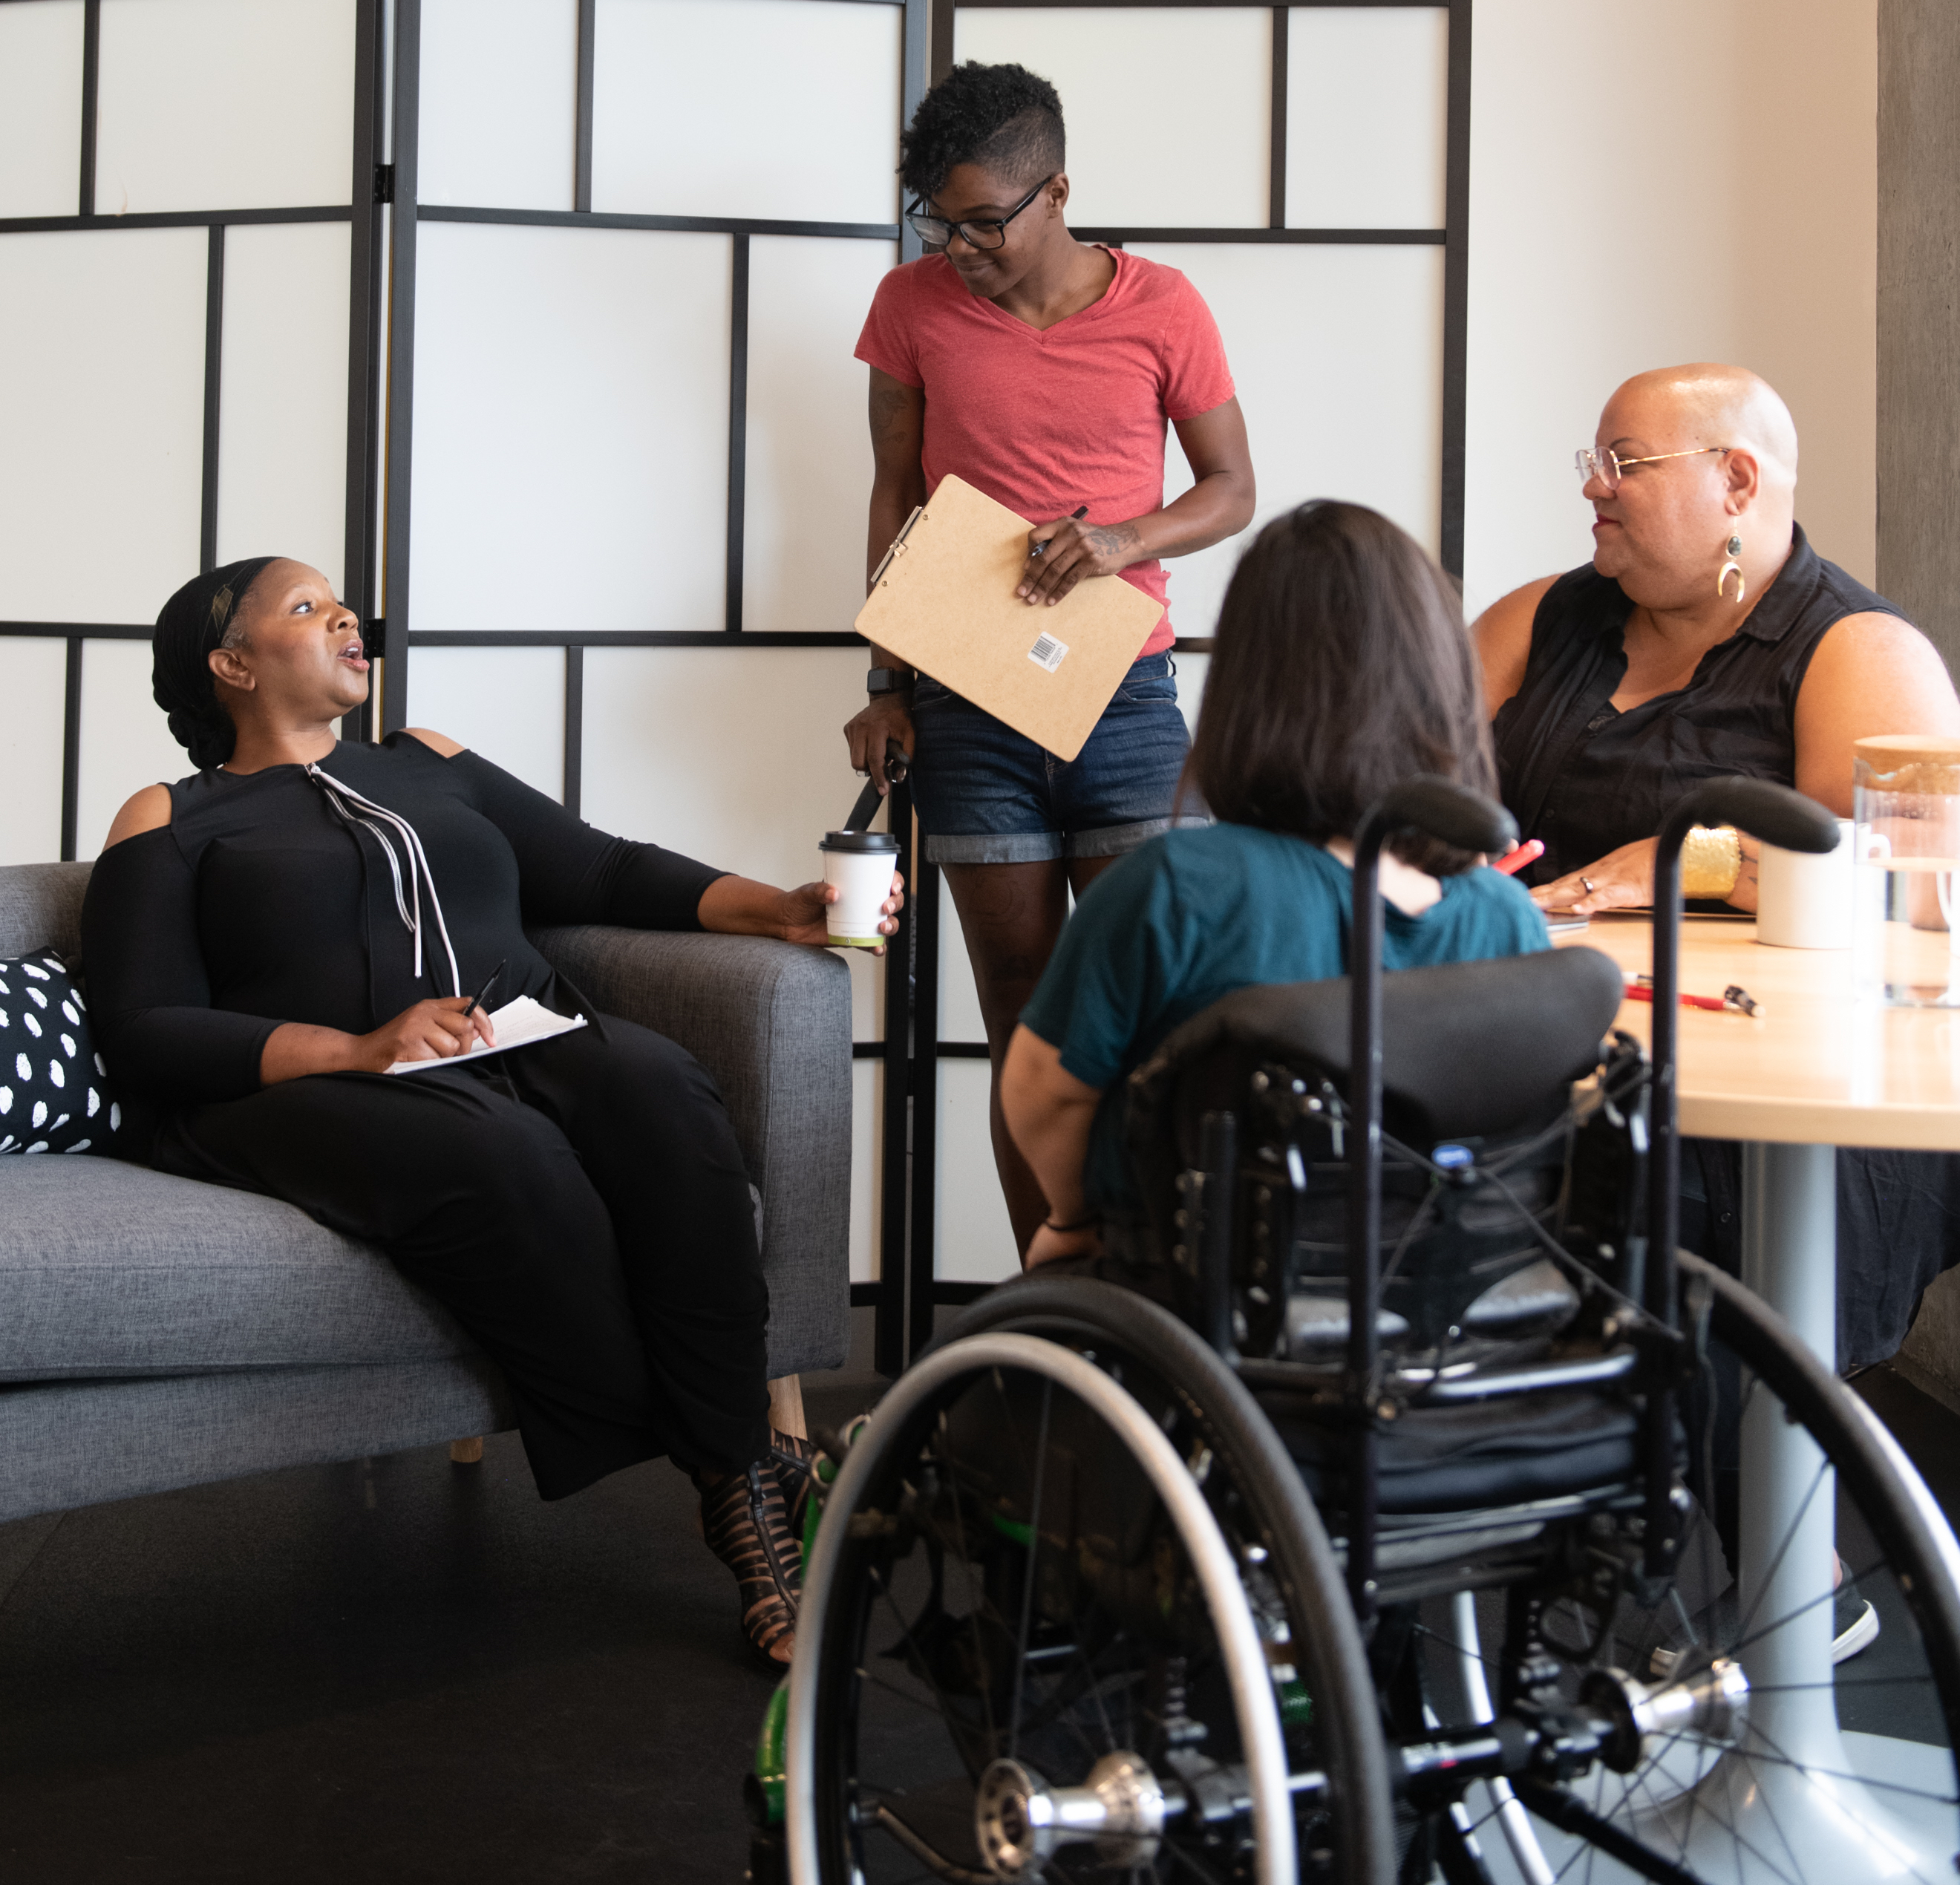 Four disabled people of color gather around a table during a meeting